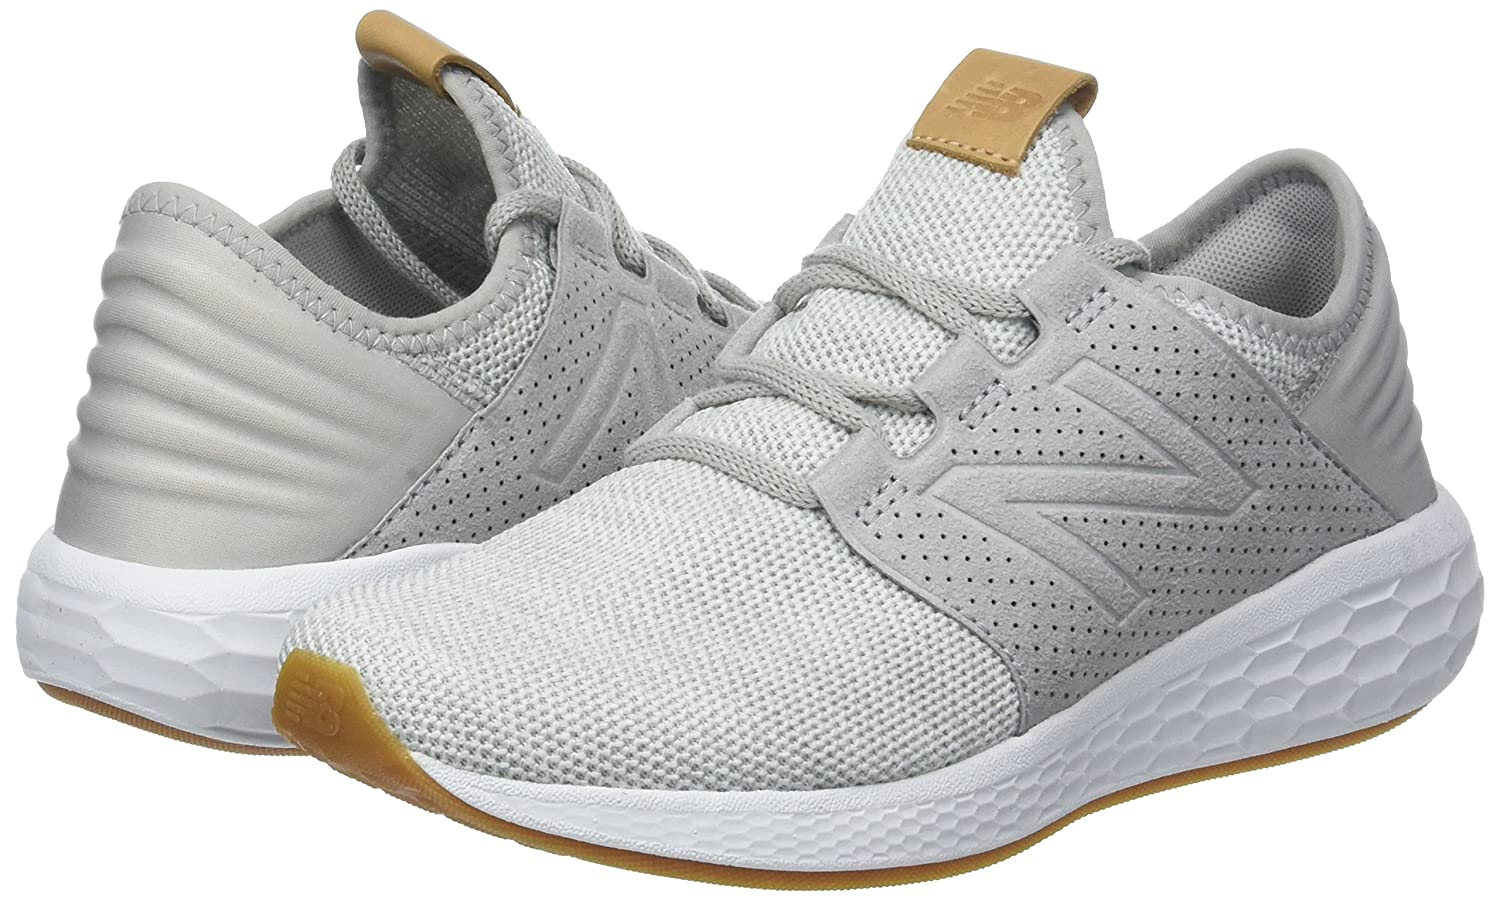 New Balance Damen Fresh Fresh Fresh Foam Cruz V2 Knit Laufschuhe Rosa One Größe 0549d3